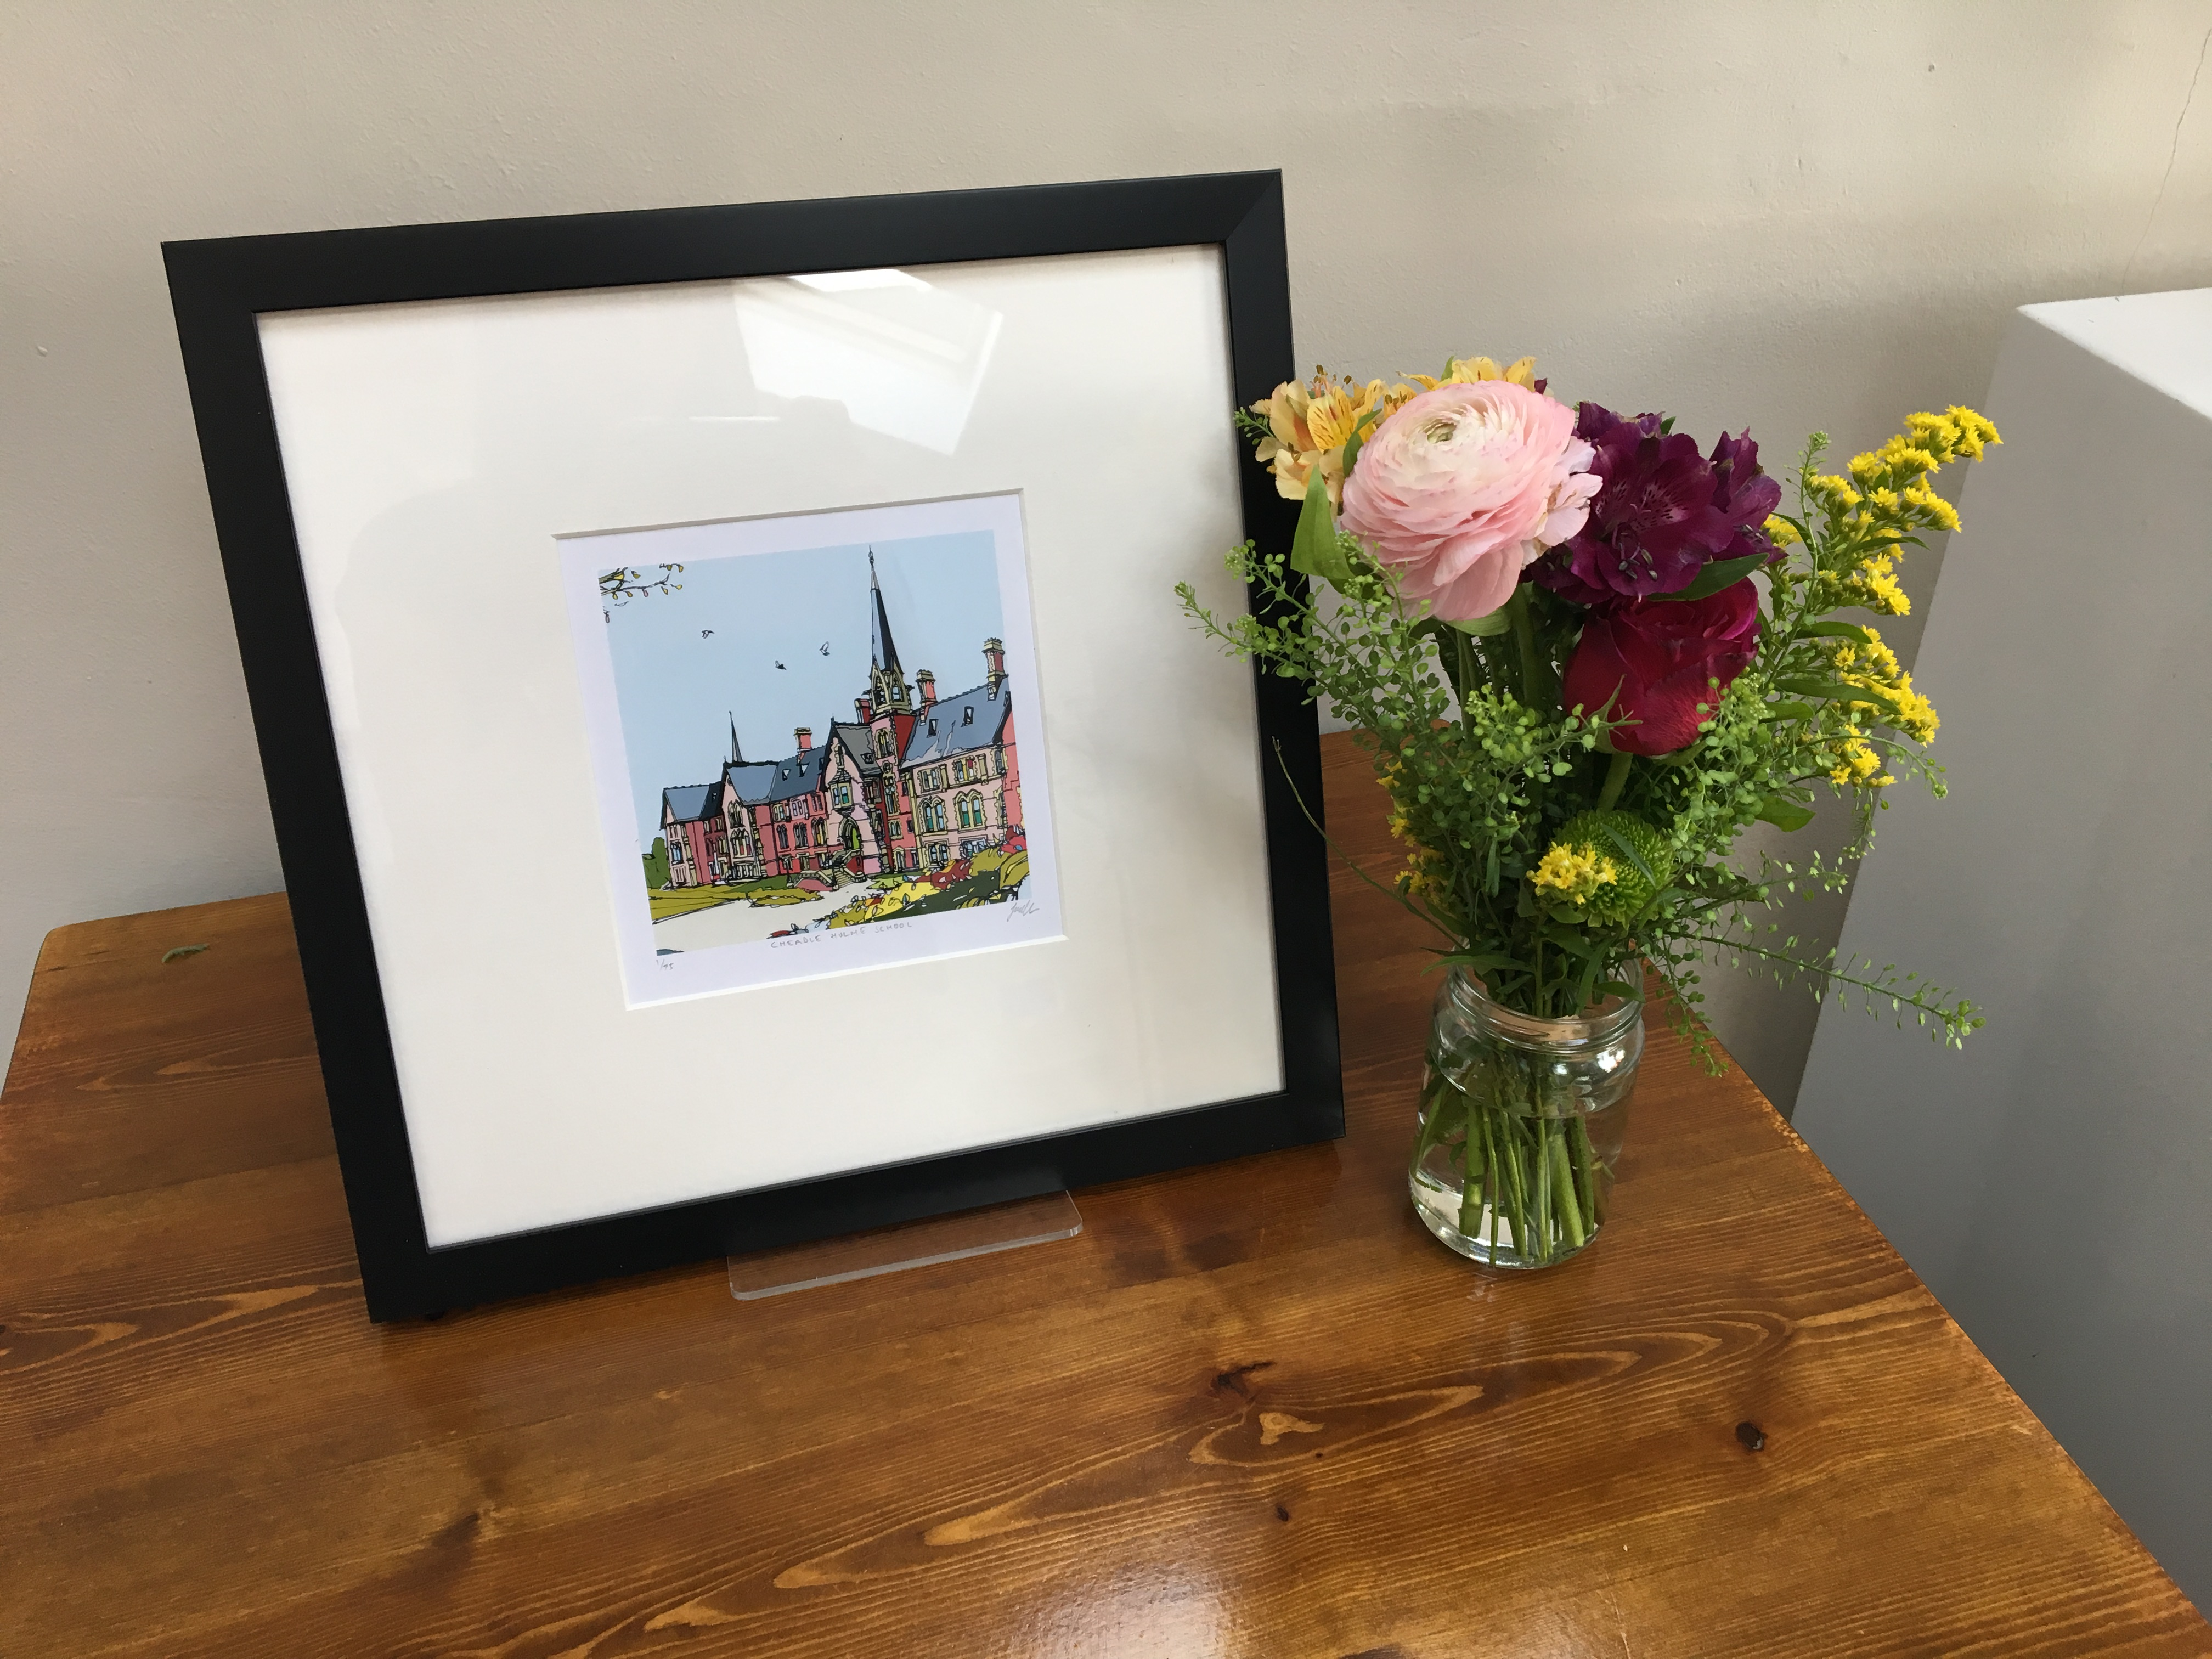 Limited Edition Print: The Main Building